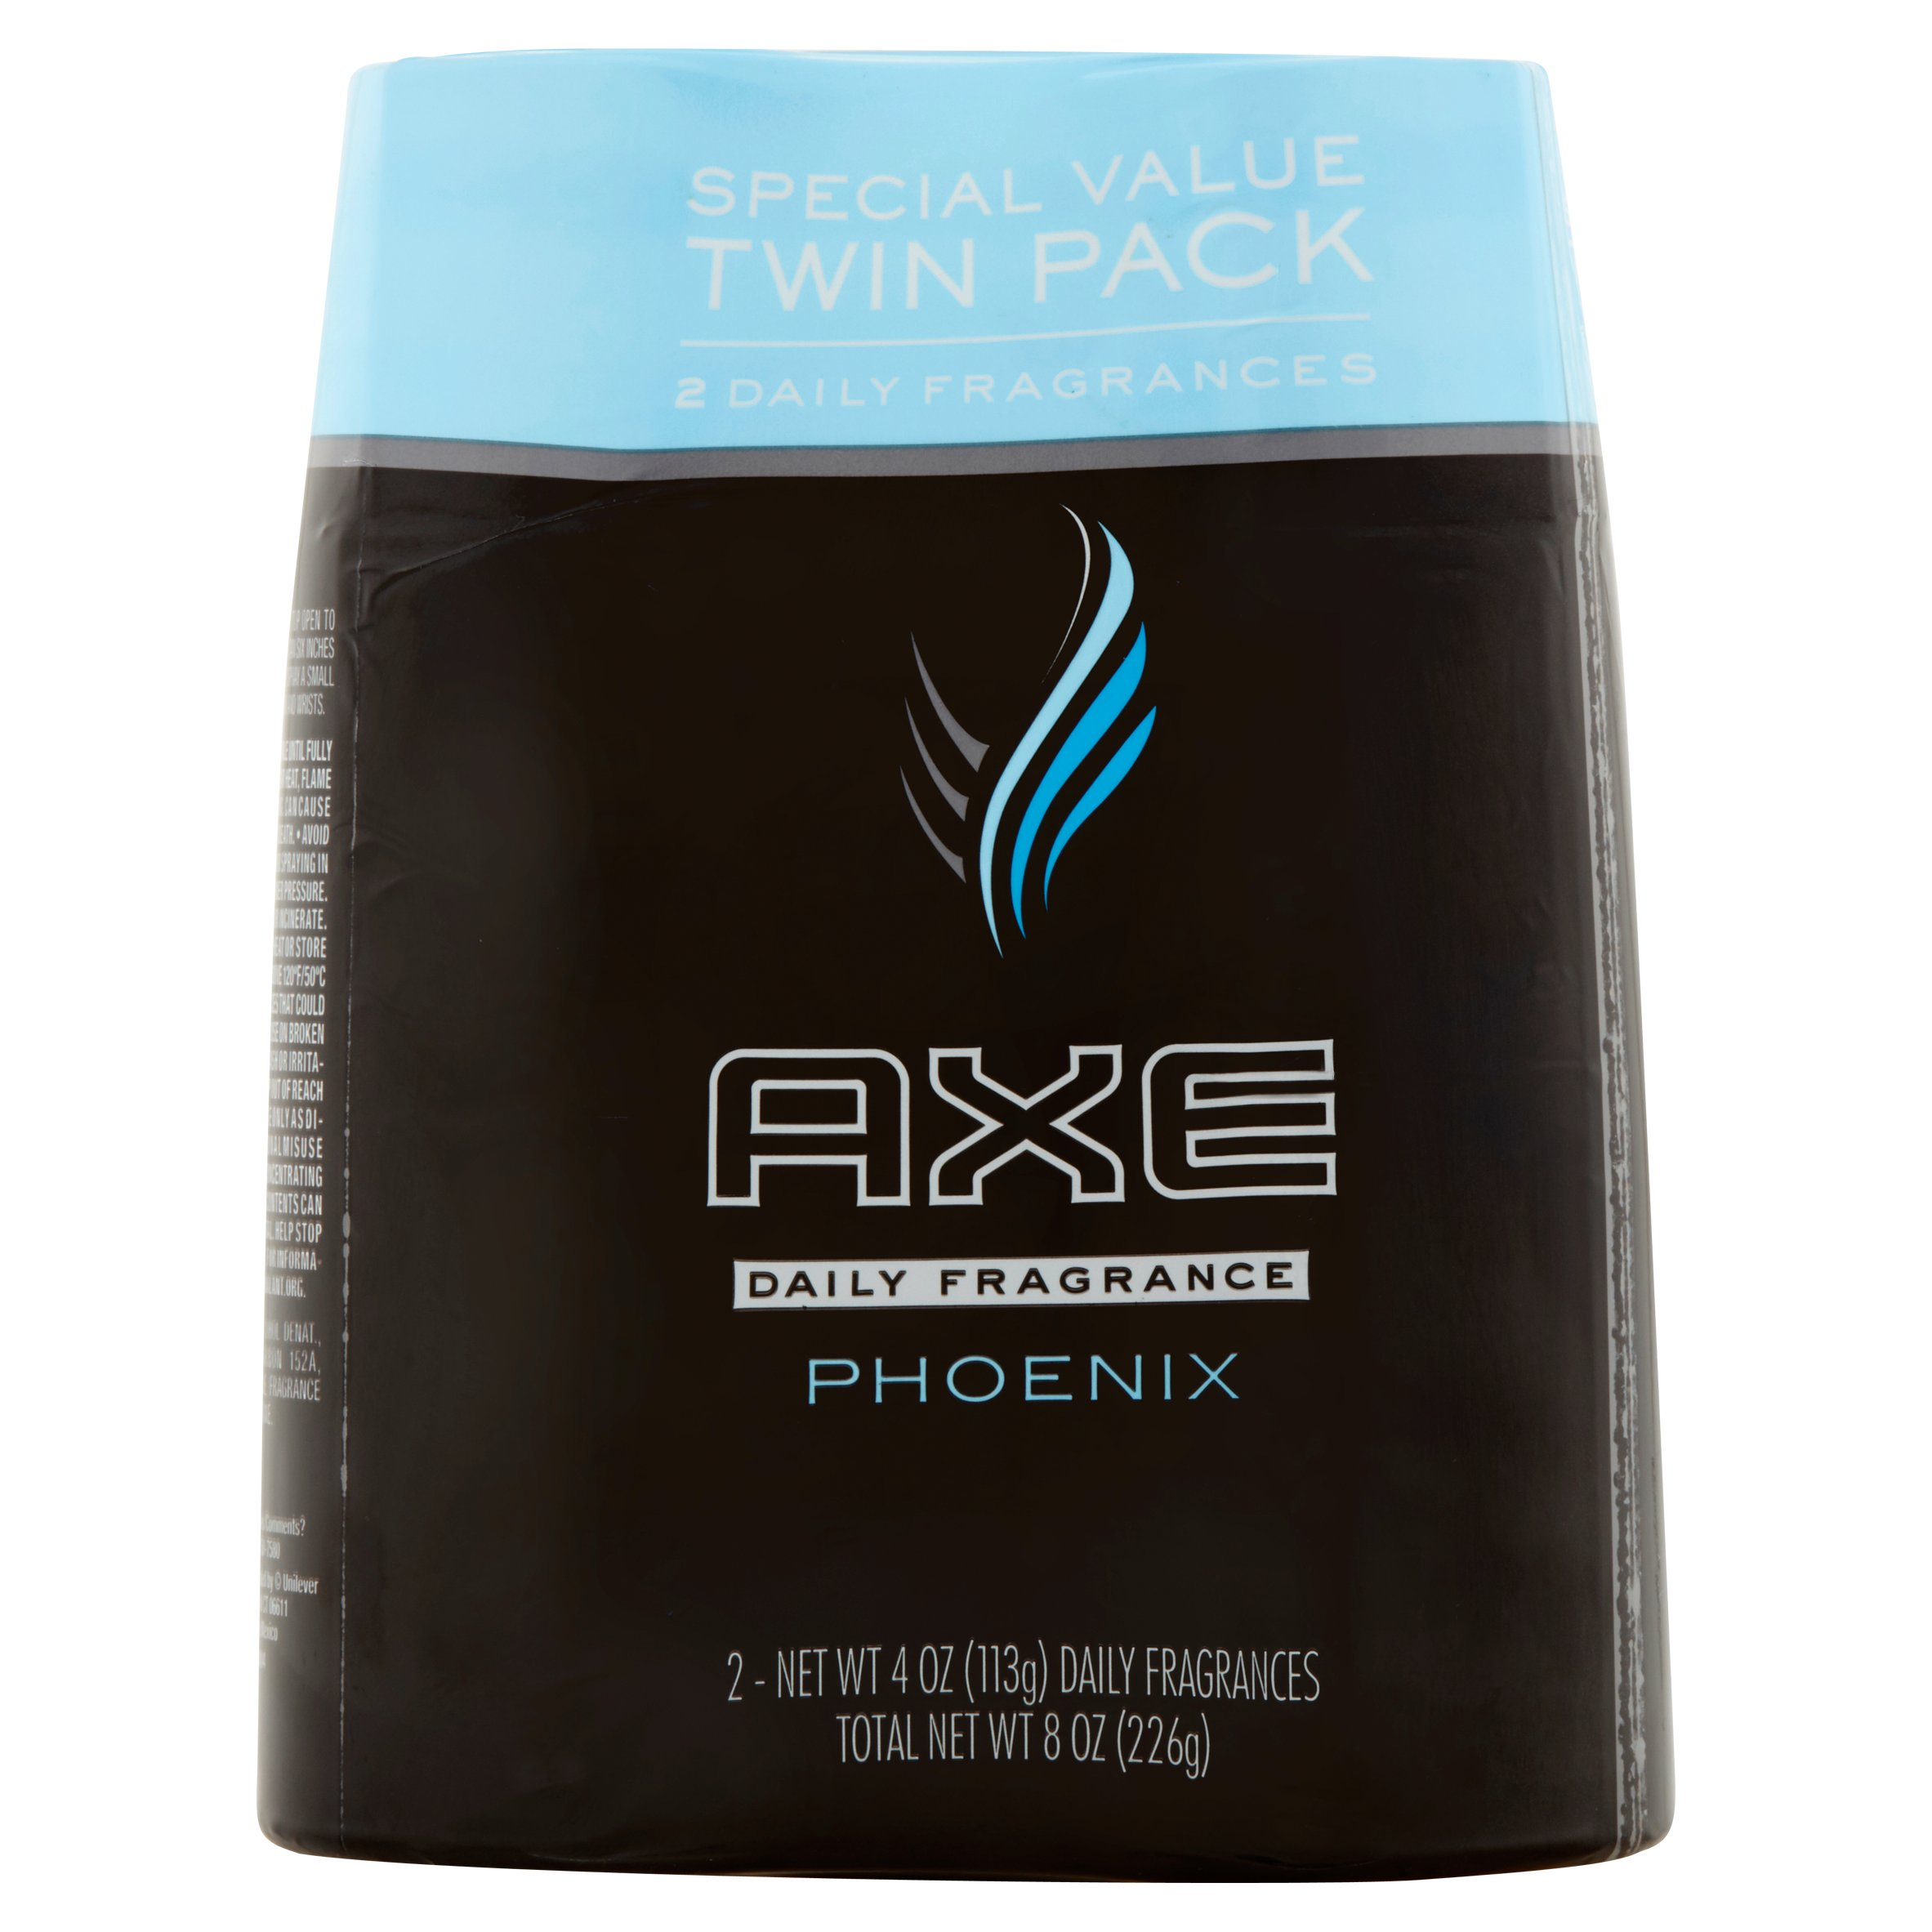 Axe Phoenix Daily Fragrance Special Value Twin Pack, 4 oz, 2 count